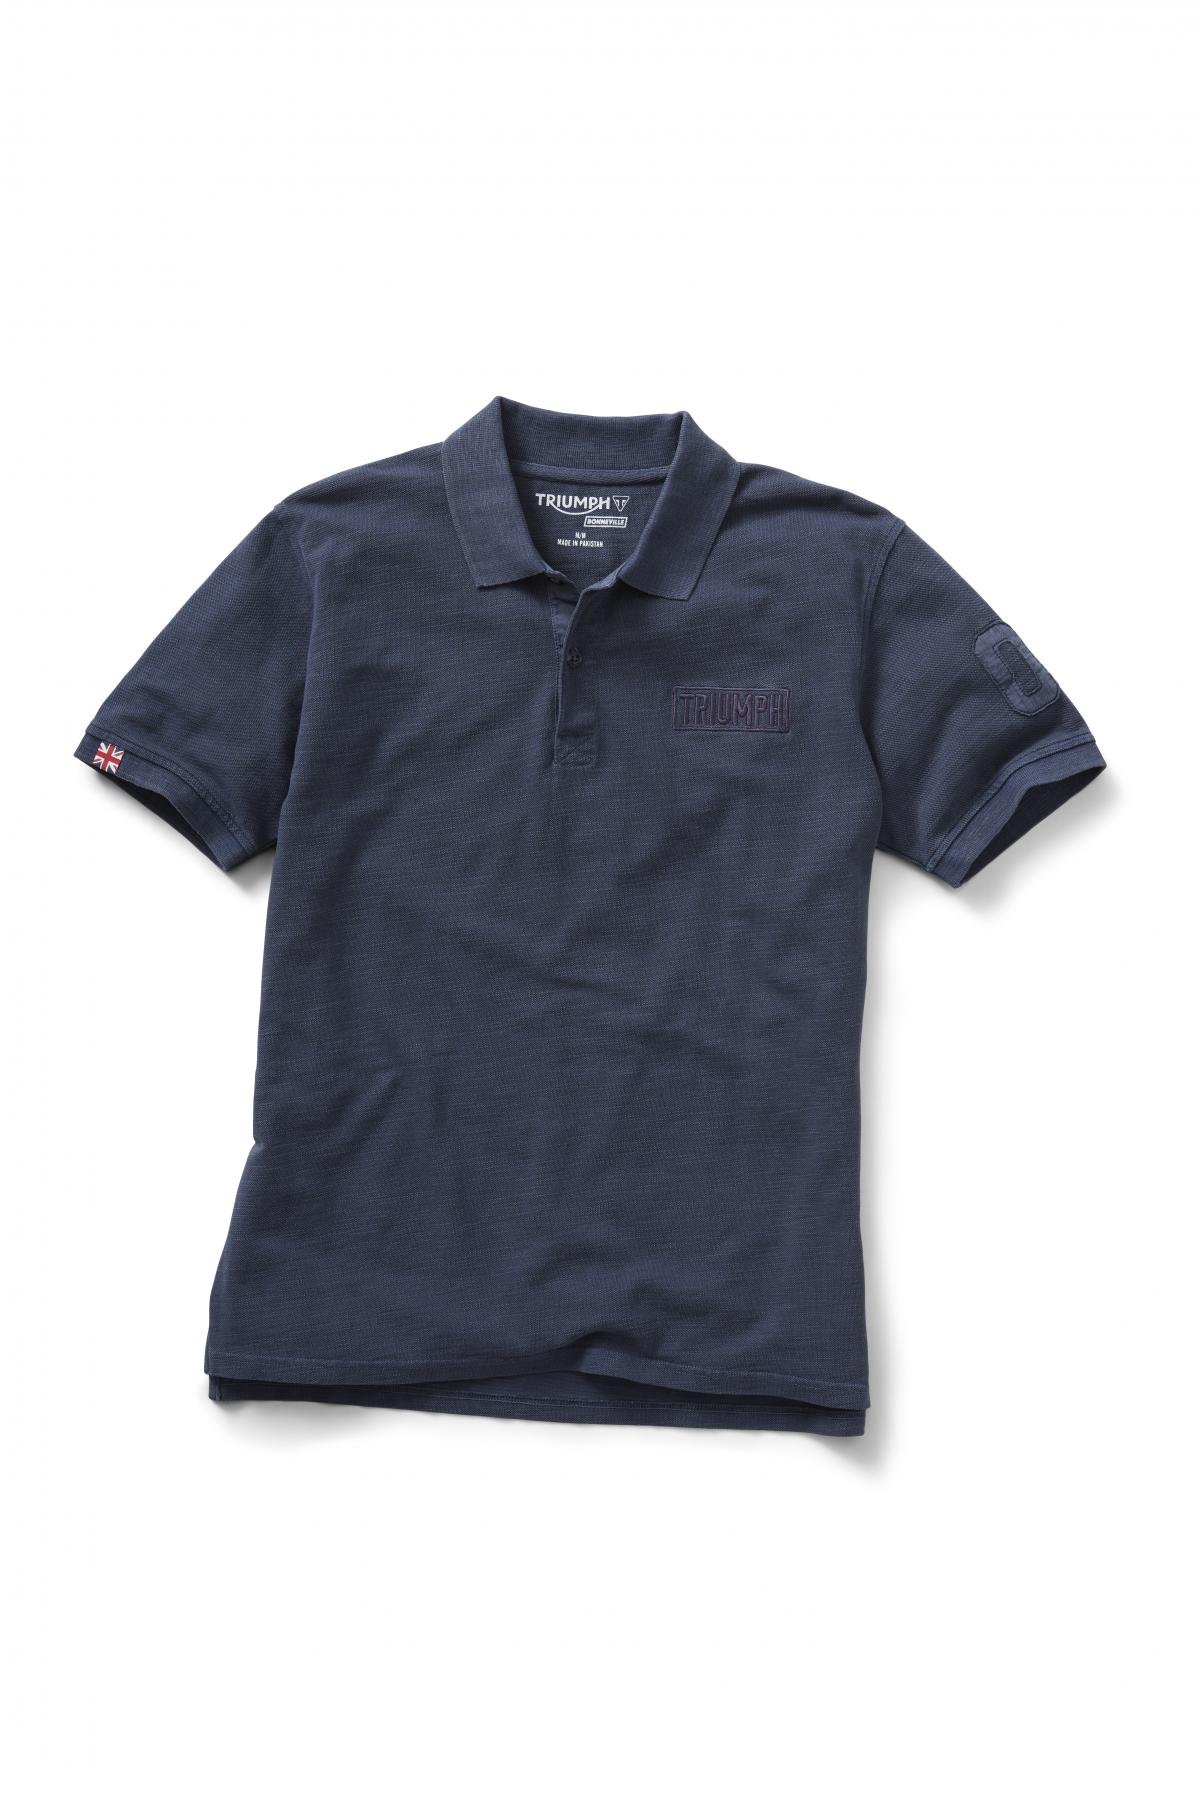 TRIUMPH OLDERSHAW BLUE POLO SHIRT NEW FOR SPRING//SUMMER 2019 MPOS19413